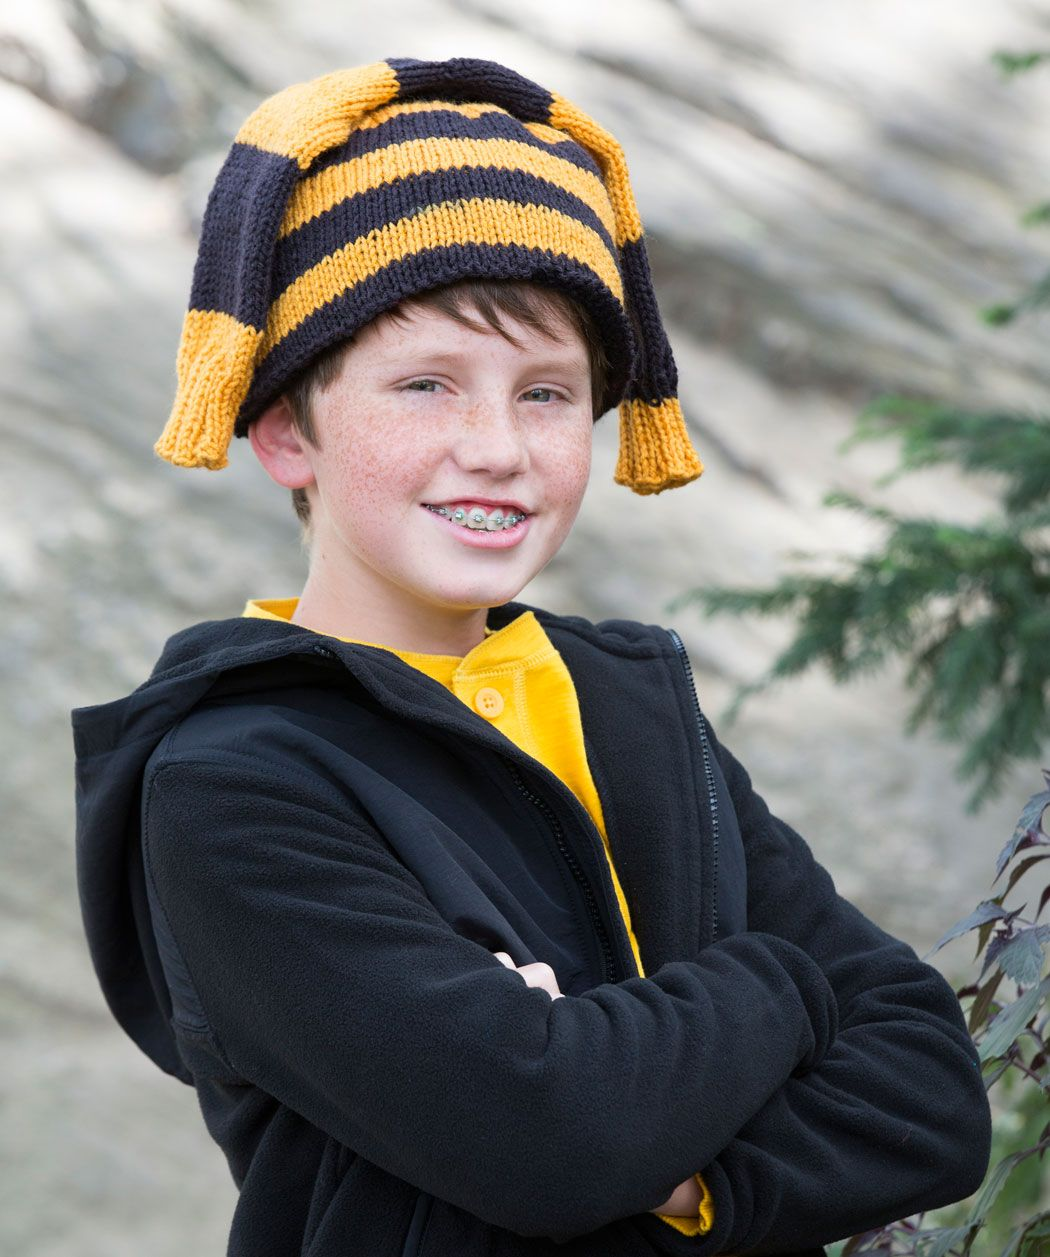 Hockey Fan Knit Hat Knitting Pattern | Red Heart | Knitted ...